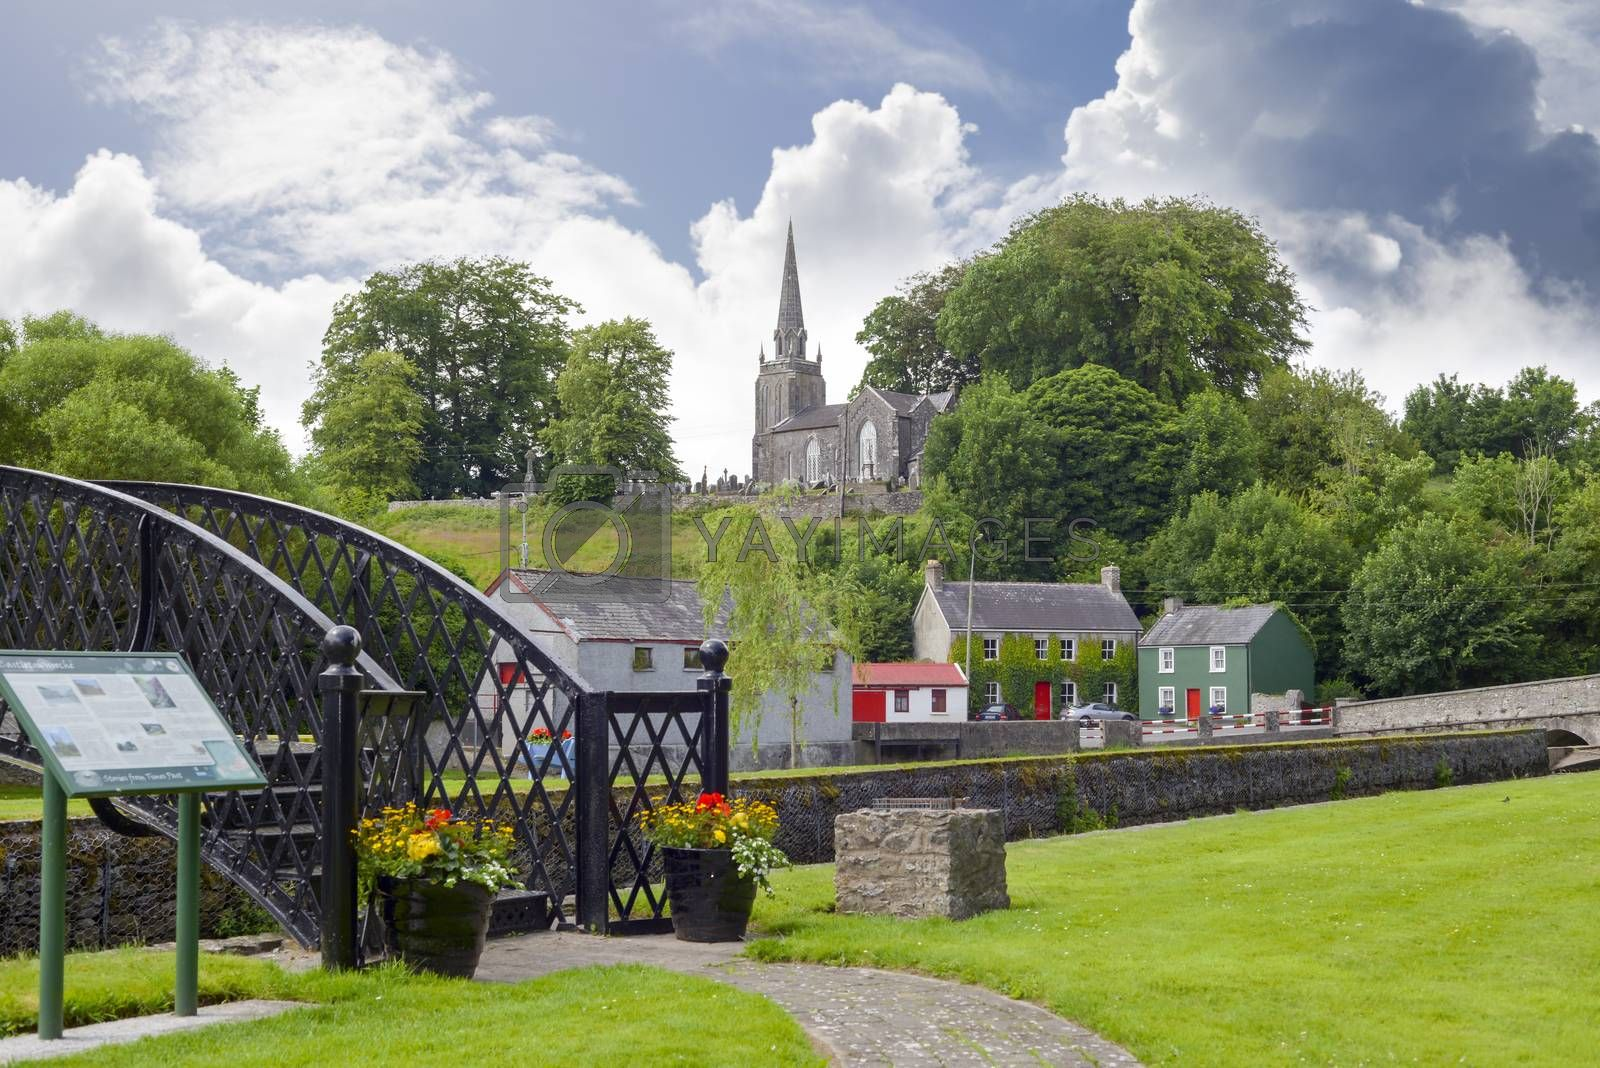 scenic view of castletownroche park and church in county cork ireland